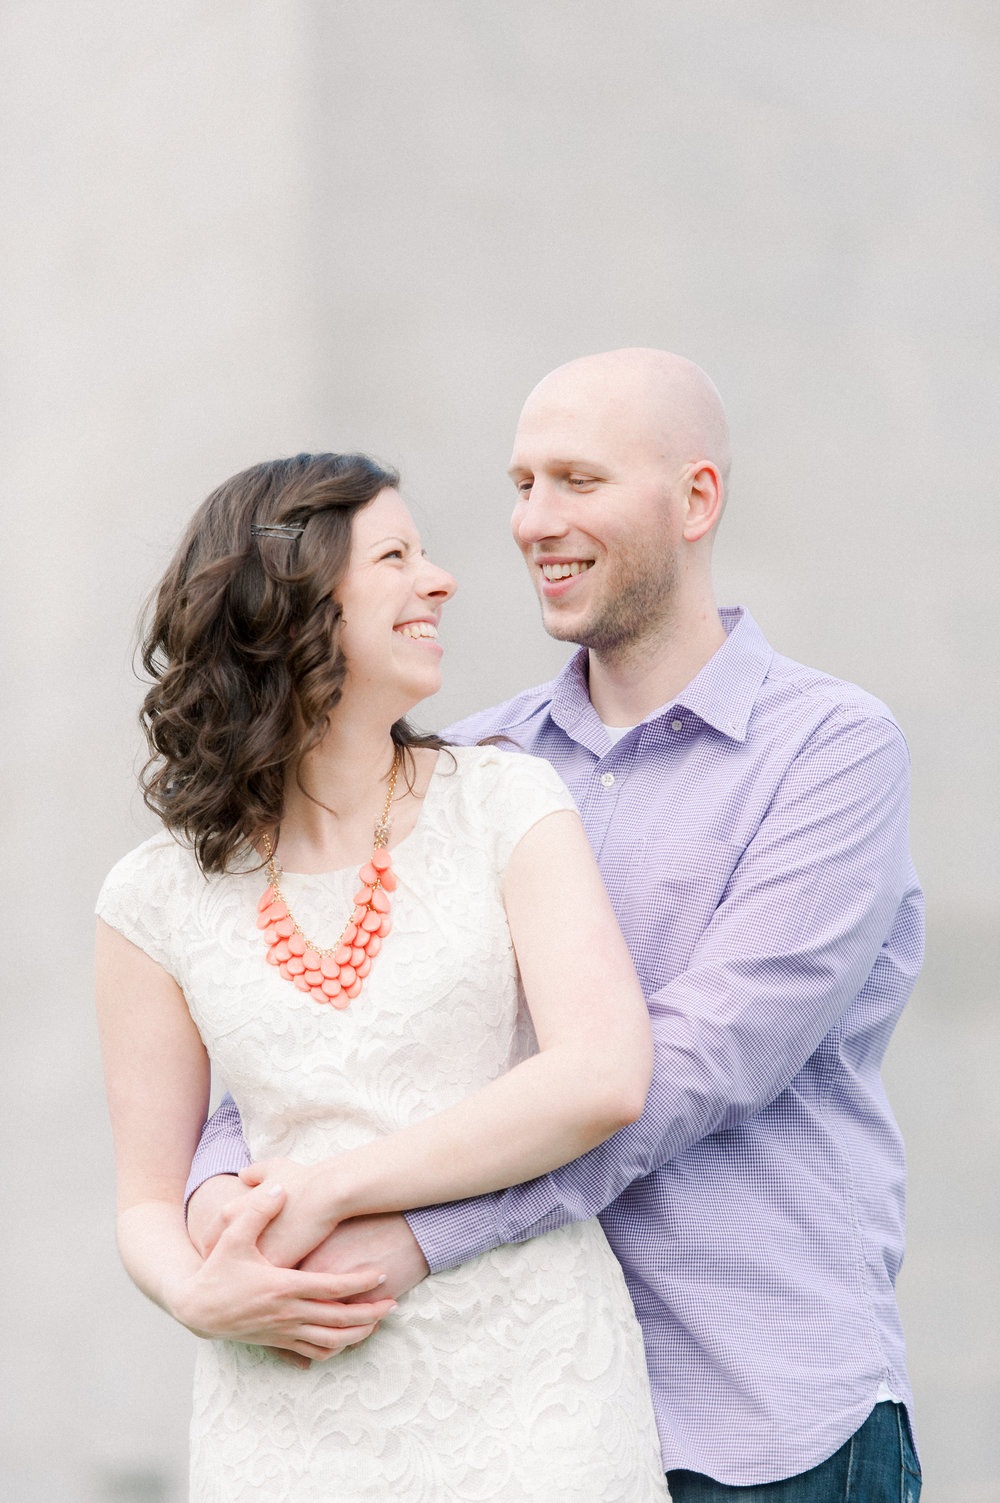 bunker hill monument and charlestown navy yard engagement session